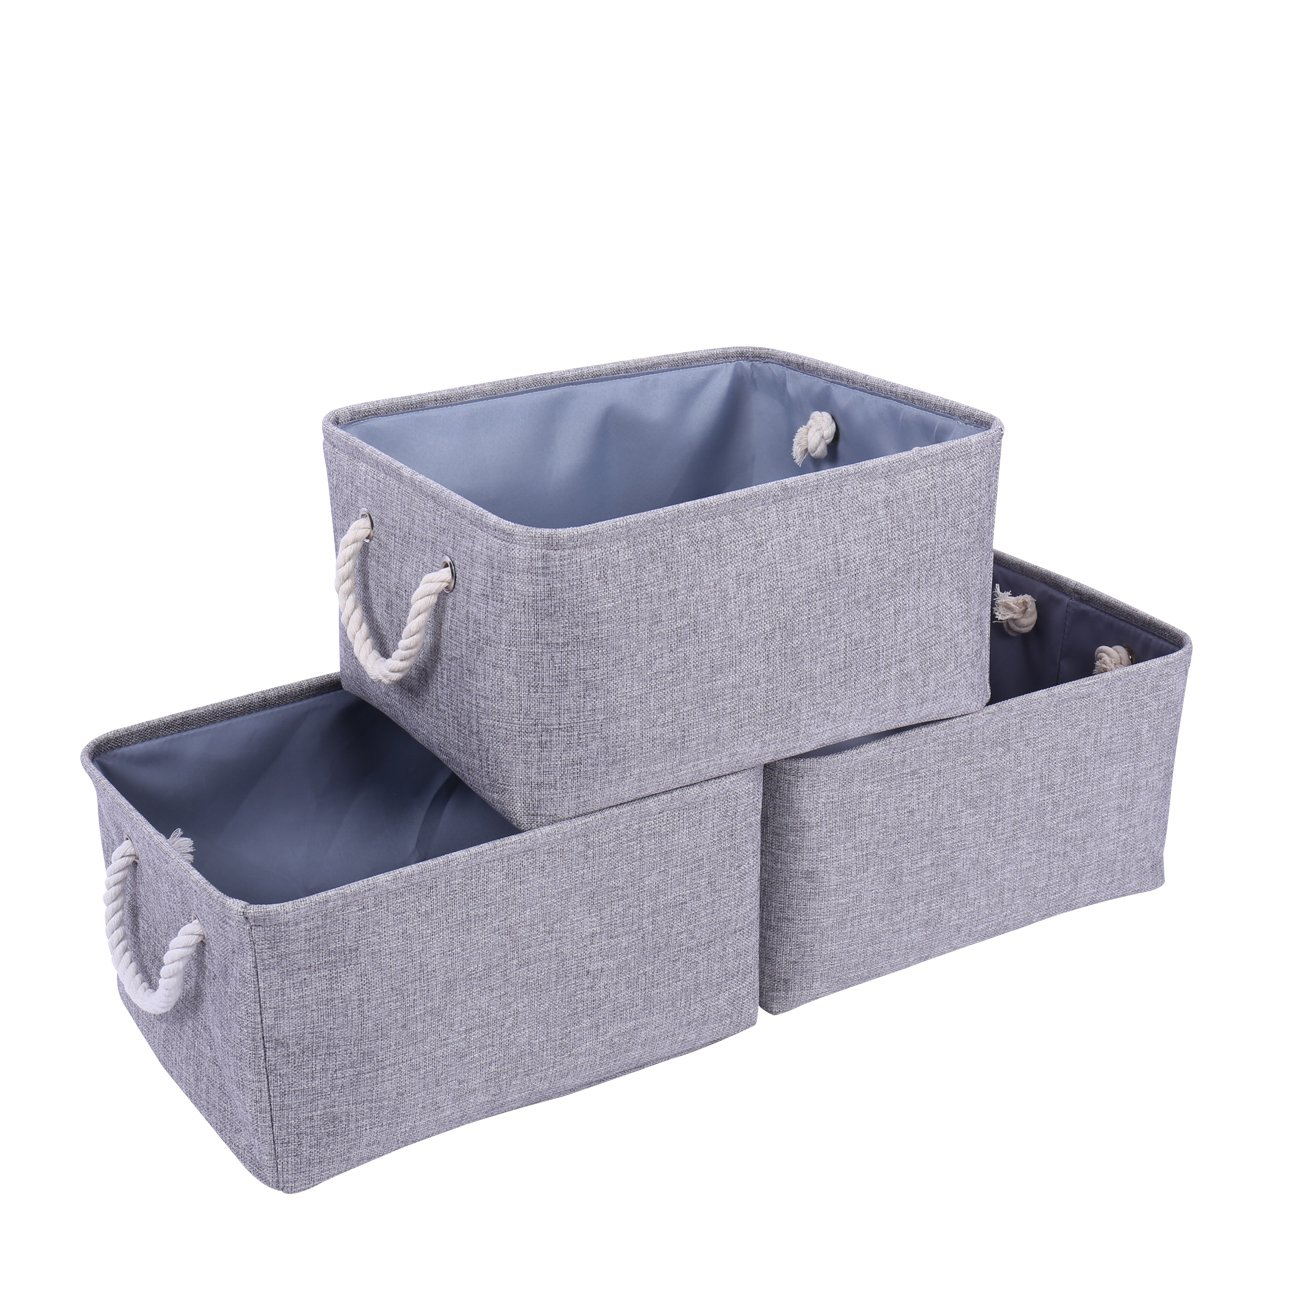 Large Rectangular Fabric Storage Bins Set [3 Pack]15.7''x 11.8''x 8.3'',Home Collapsible Canvas Storage Baskets Organizers with Rope Handles for Shelves,Toy Storage Bins, Baby and Kids Laundry Basket